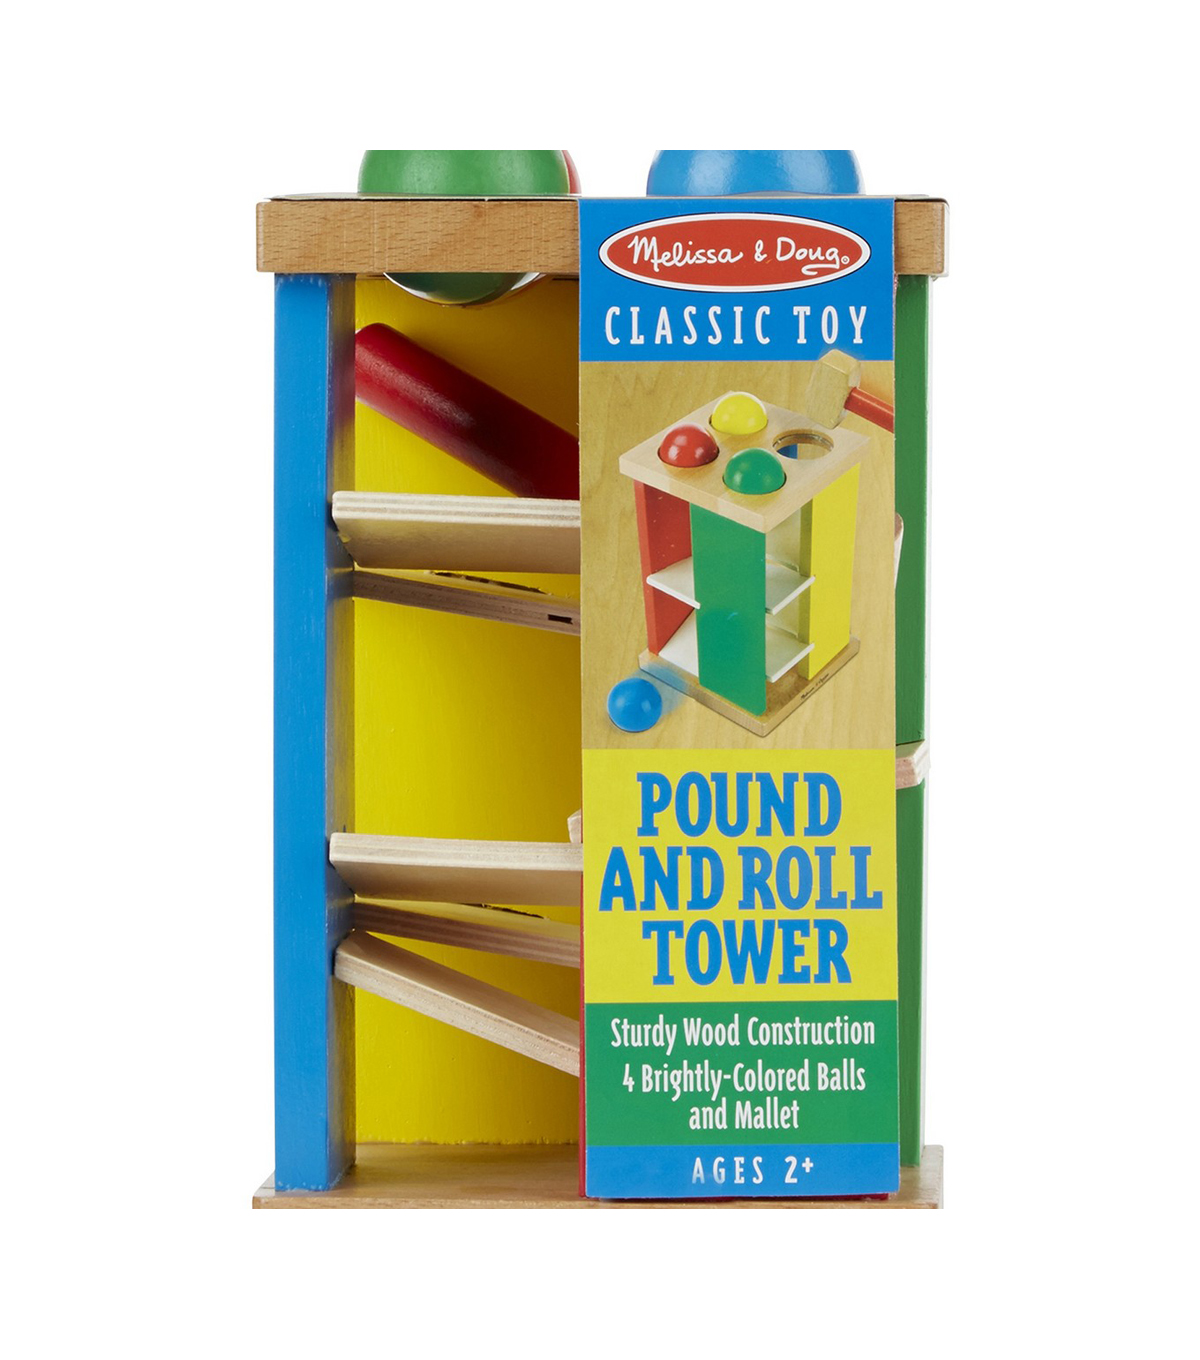 Pound And Roll Tower-